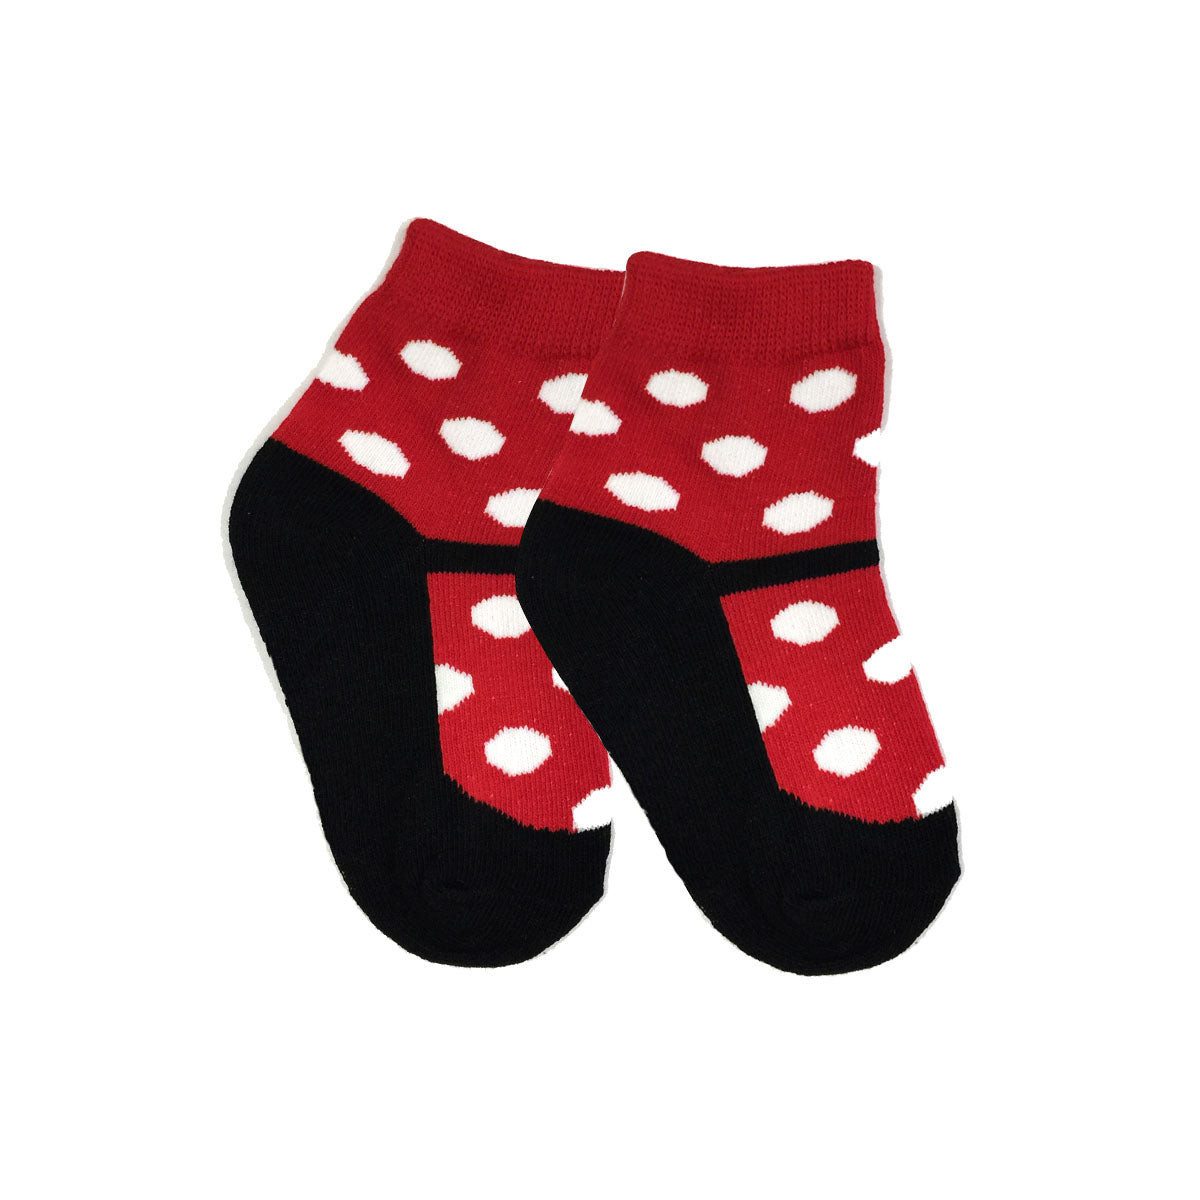 Wrapables Non-Slip Cute Mary Jane Socks for Baby (Set of 4)